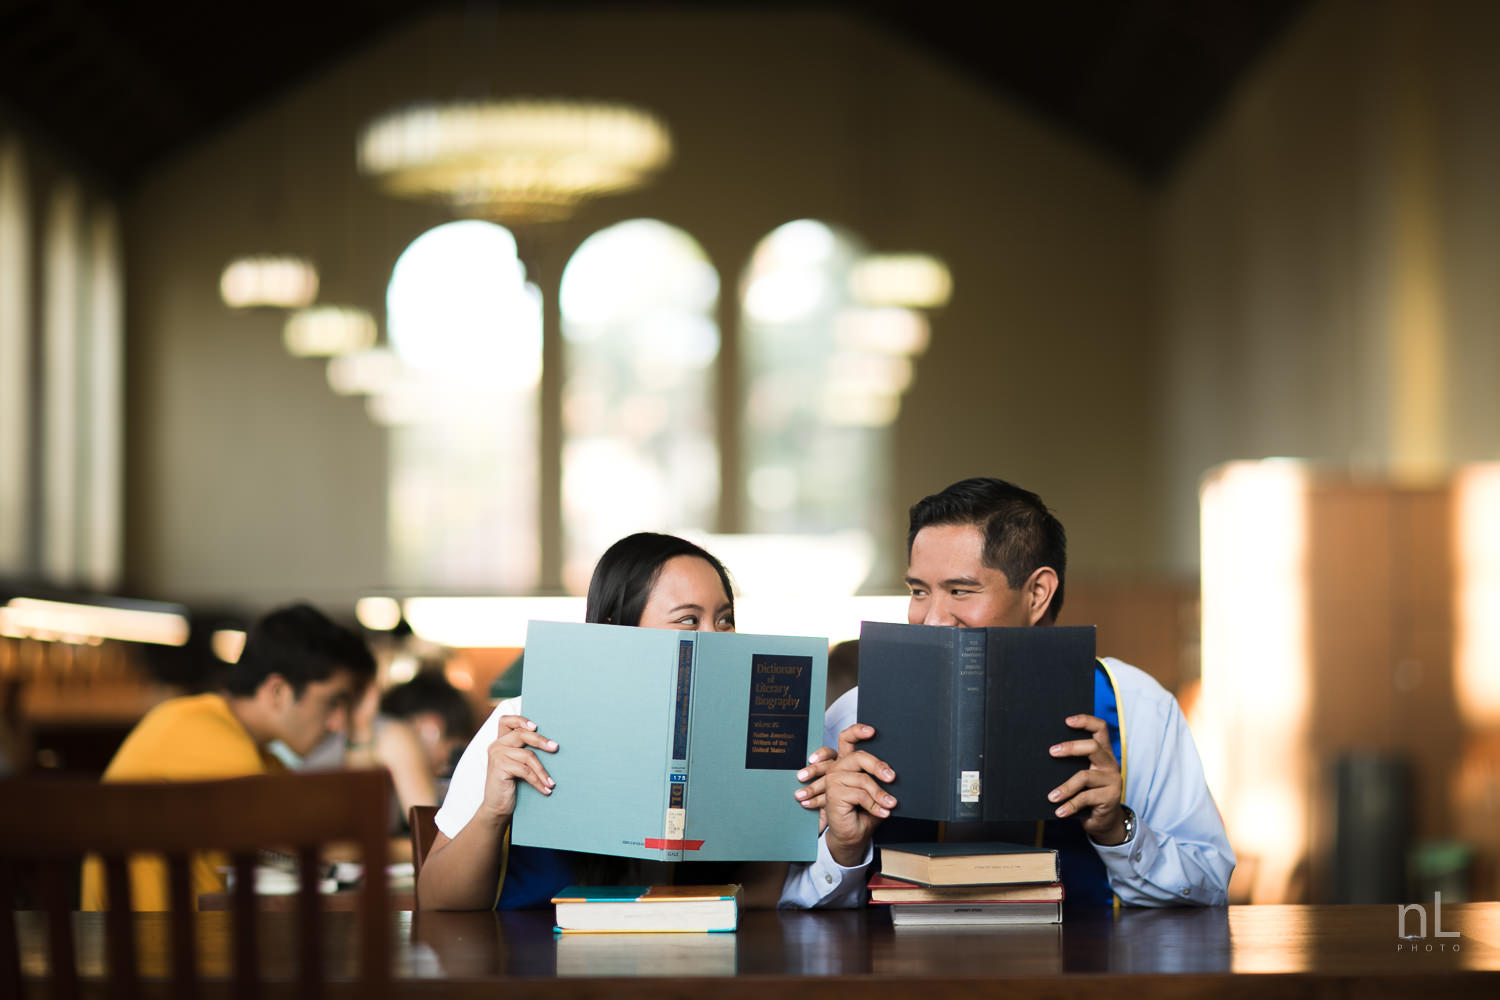 A portrait of brother and sister in the Powell Library Reading Room smiling behind books.